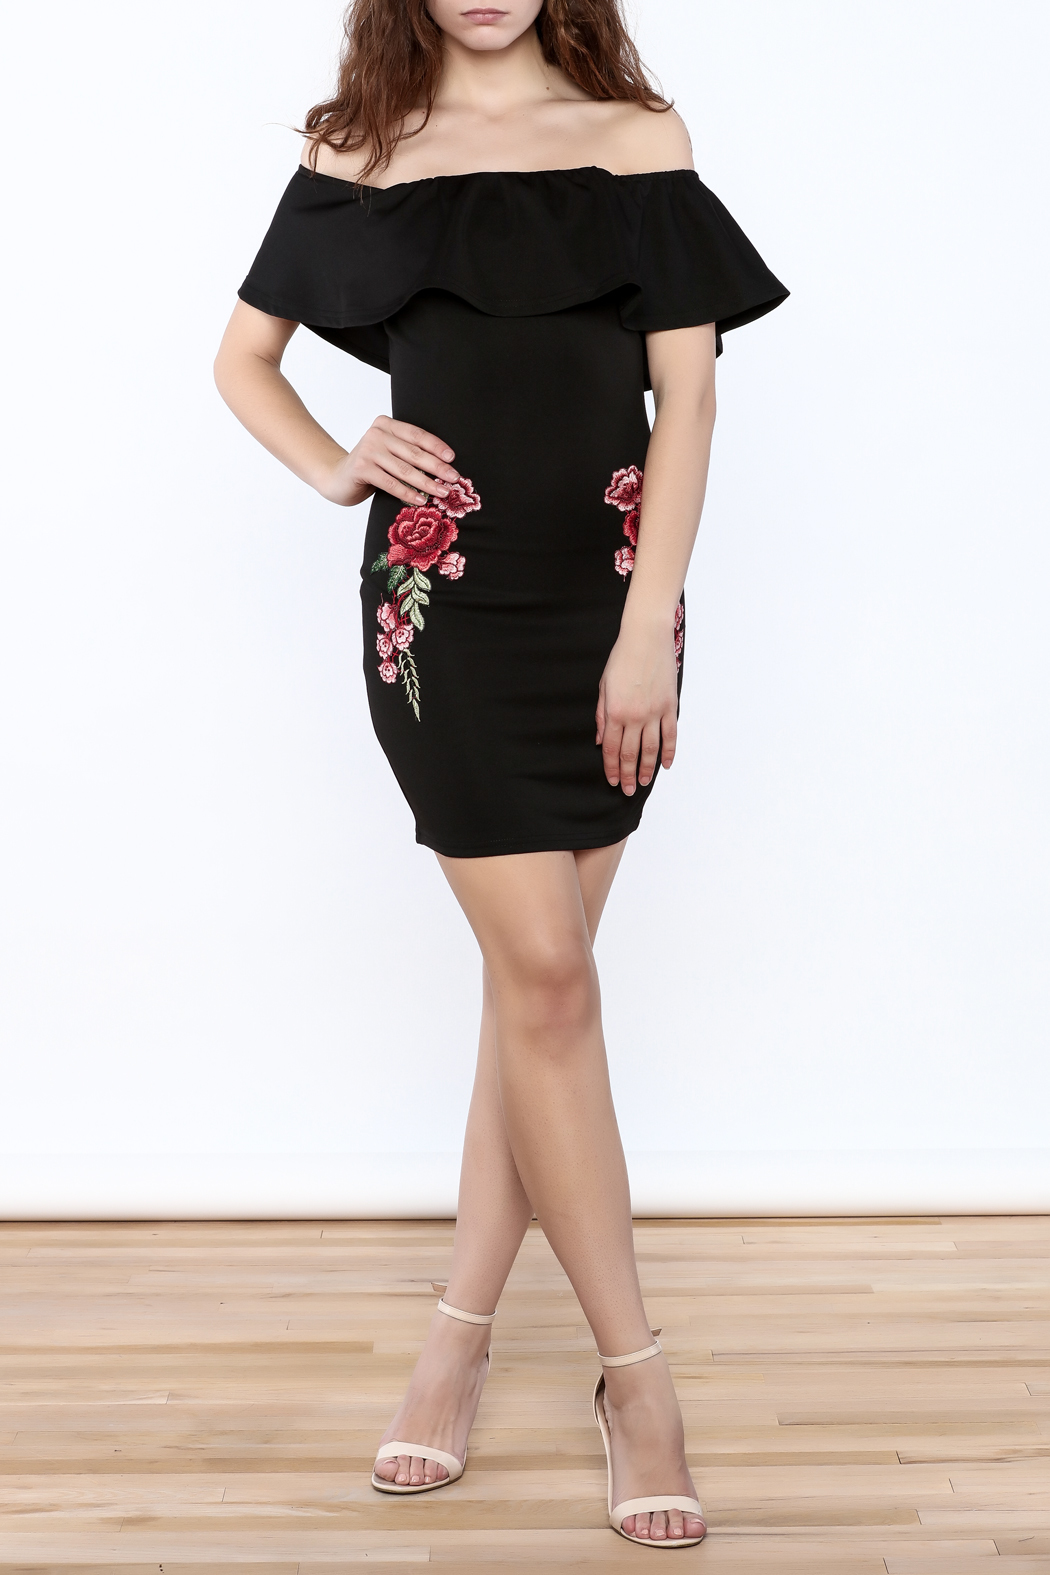 Nellis rose embroidered dress from manhattan by dor l